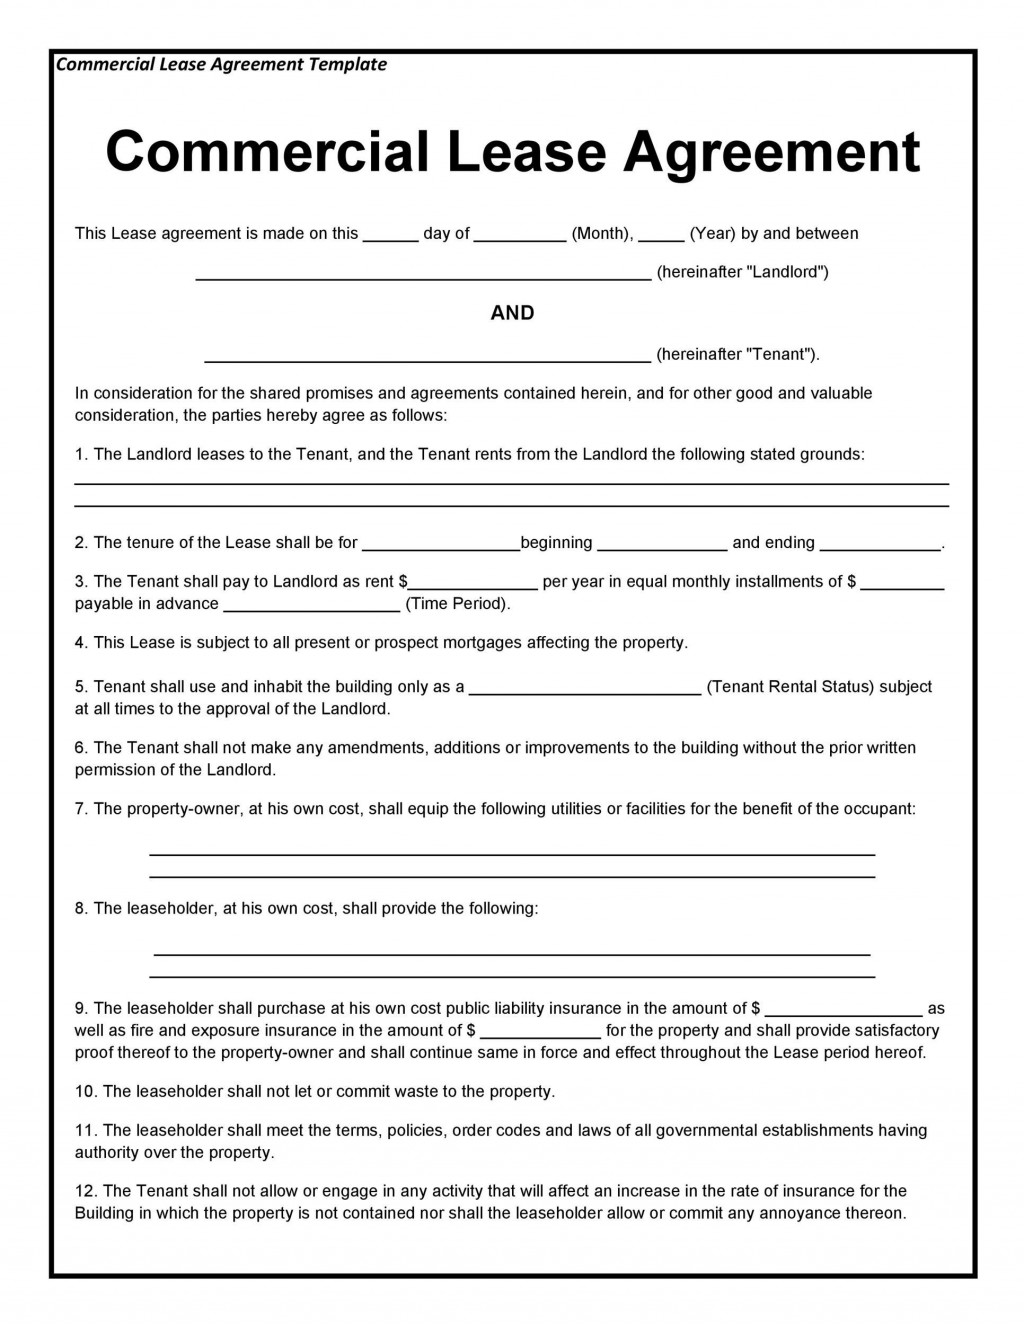 003 Remarkable Template For Home Rental Agreement Photo  House RentLarge